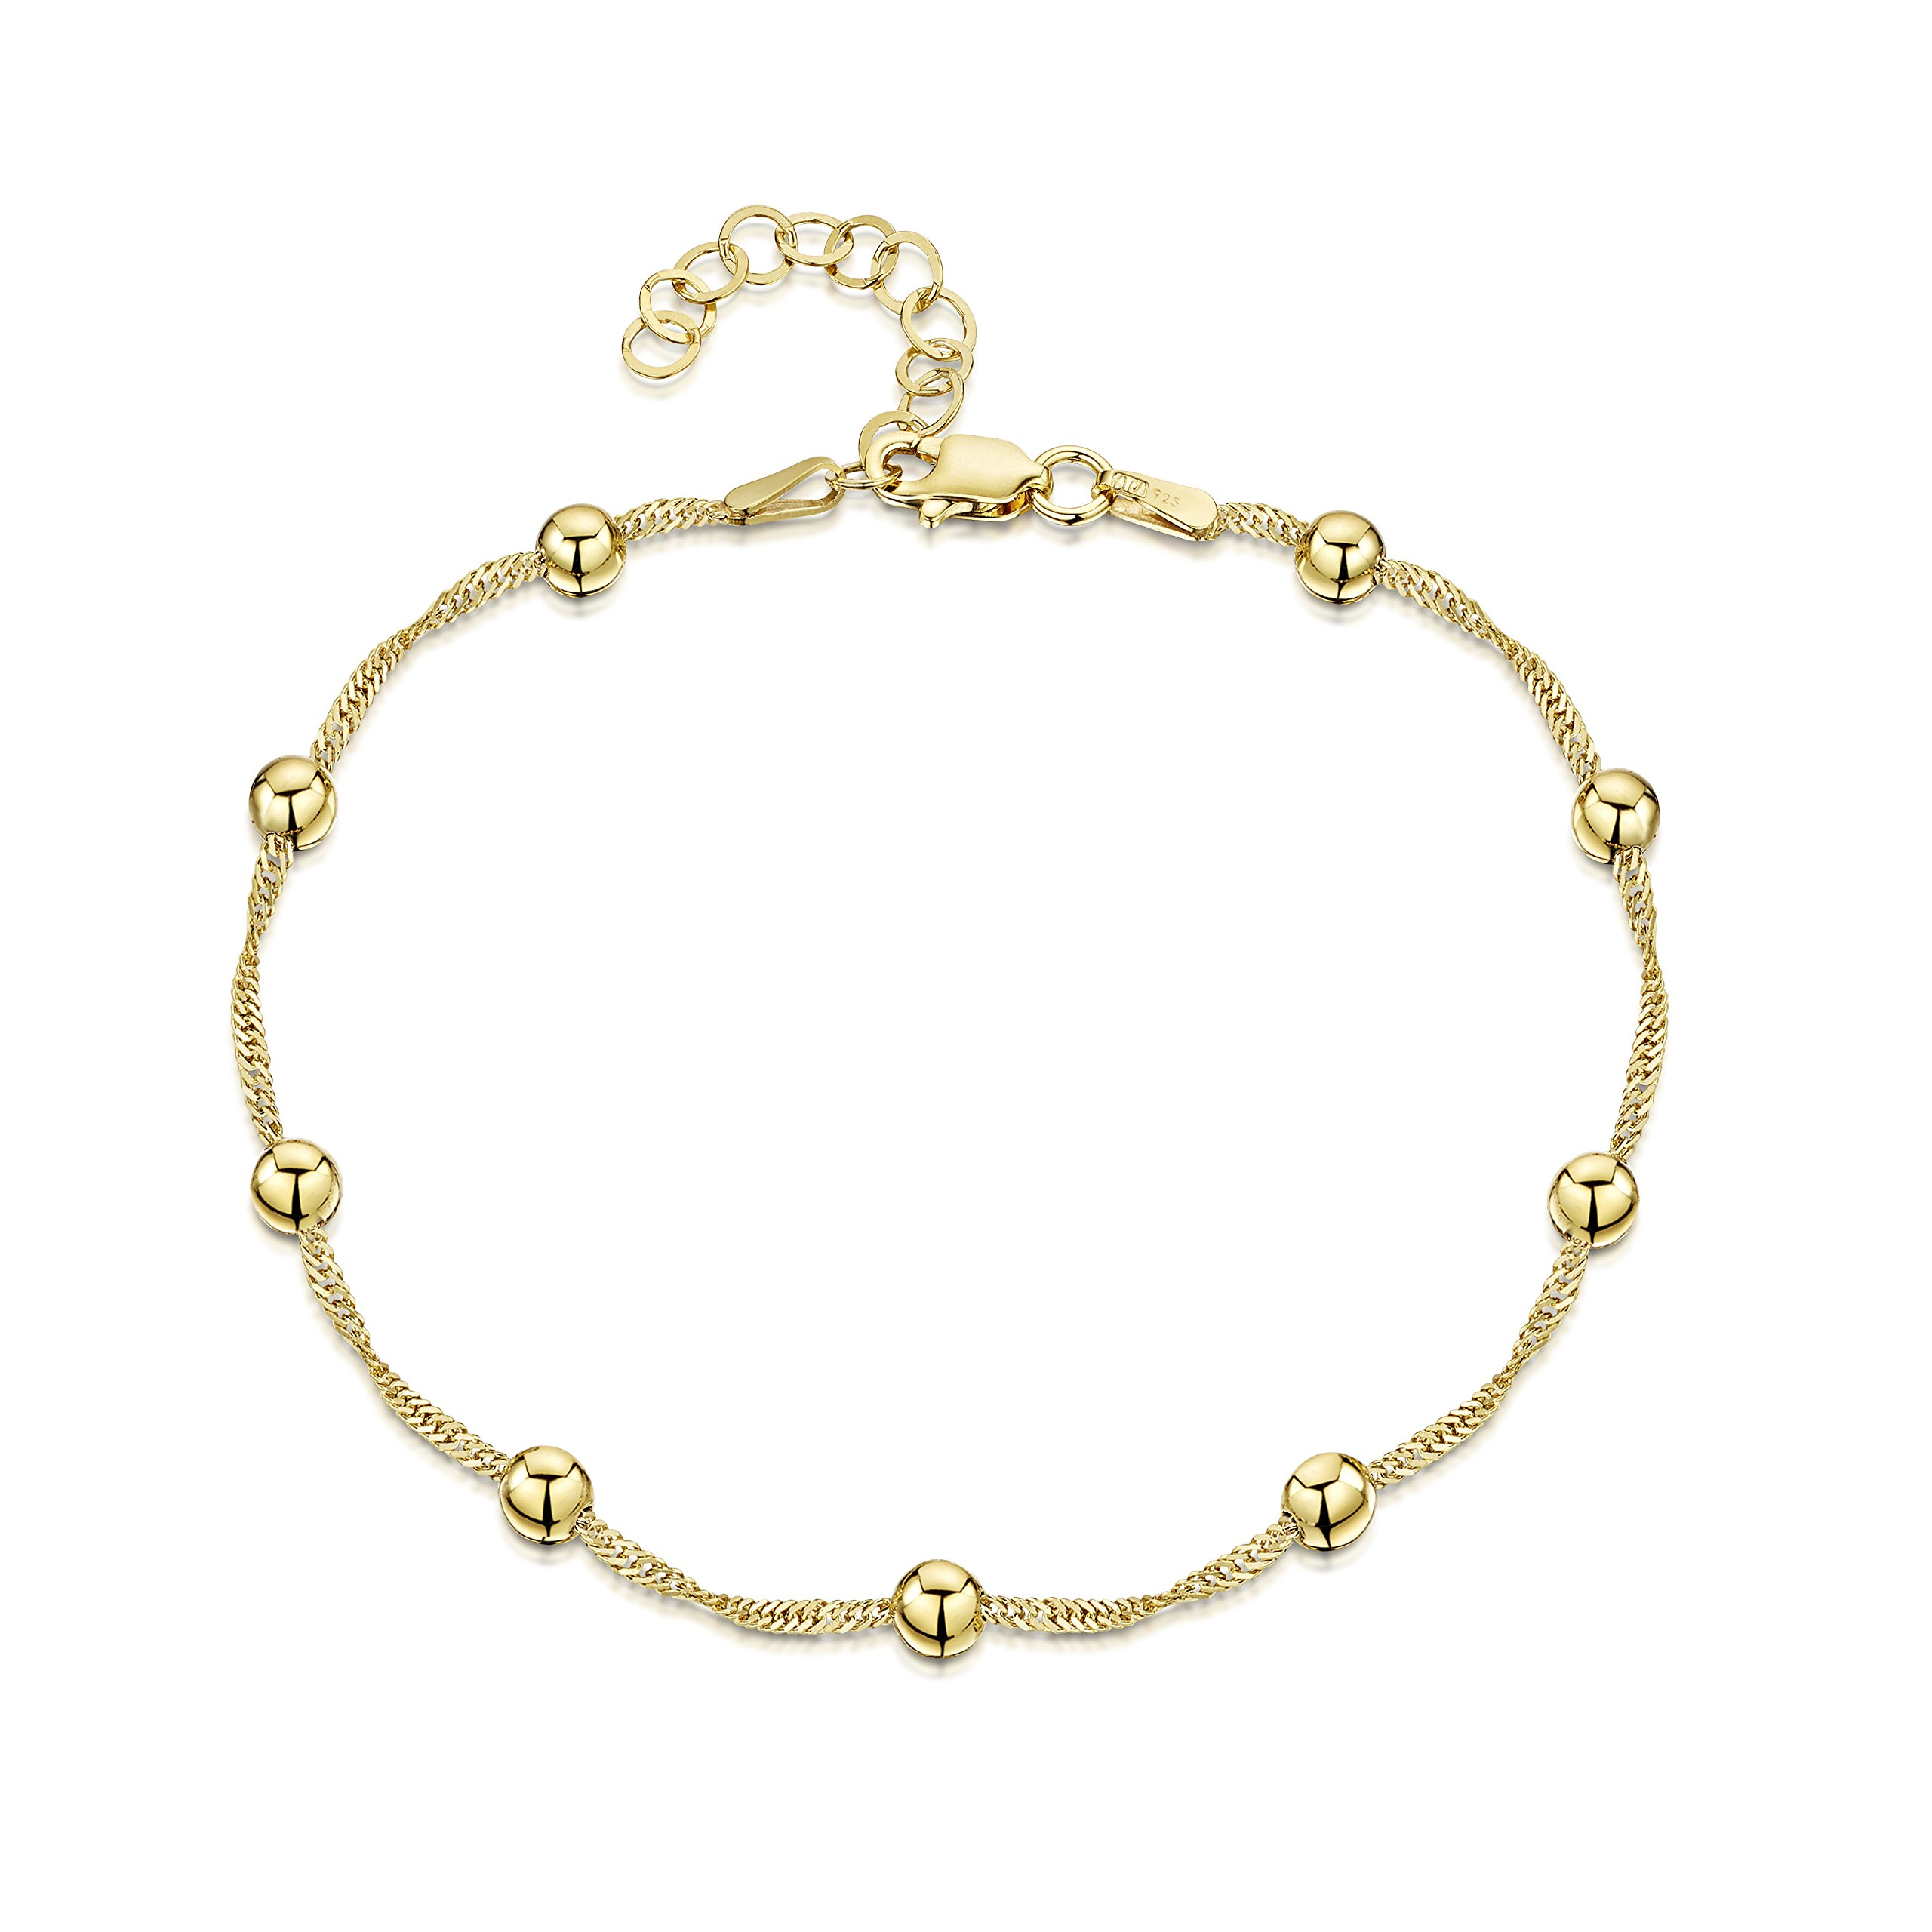 18K Gold Plated on 925 Fine Sterling Silver 1.4 mm Adjustable Anklet - Singapore Chain with 4 mm Ball Beads Ankle Bracelet - 9'' to 10'' inch - Flexible Fit